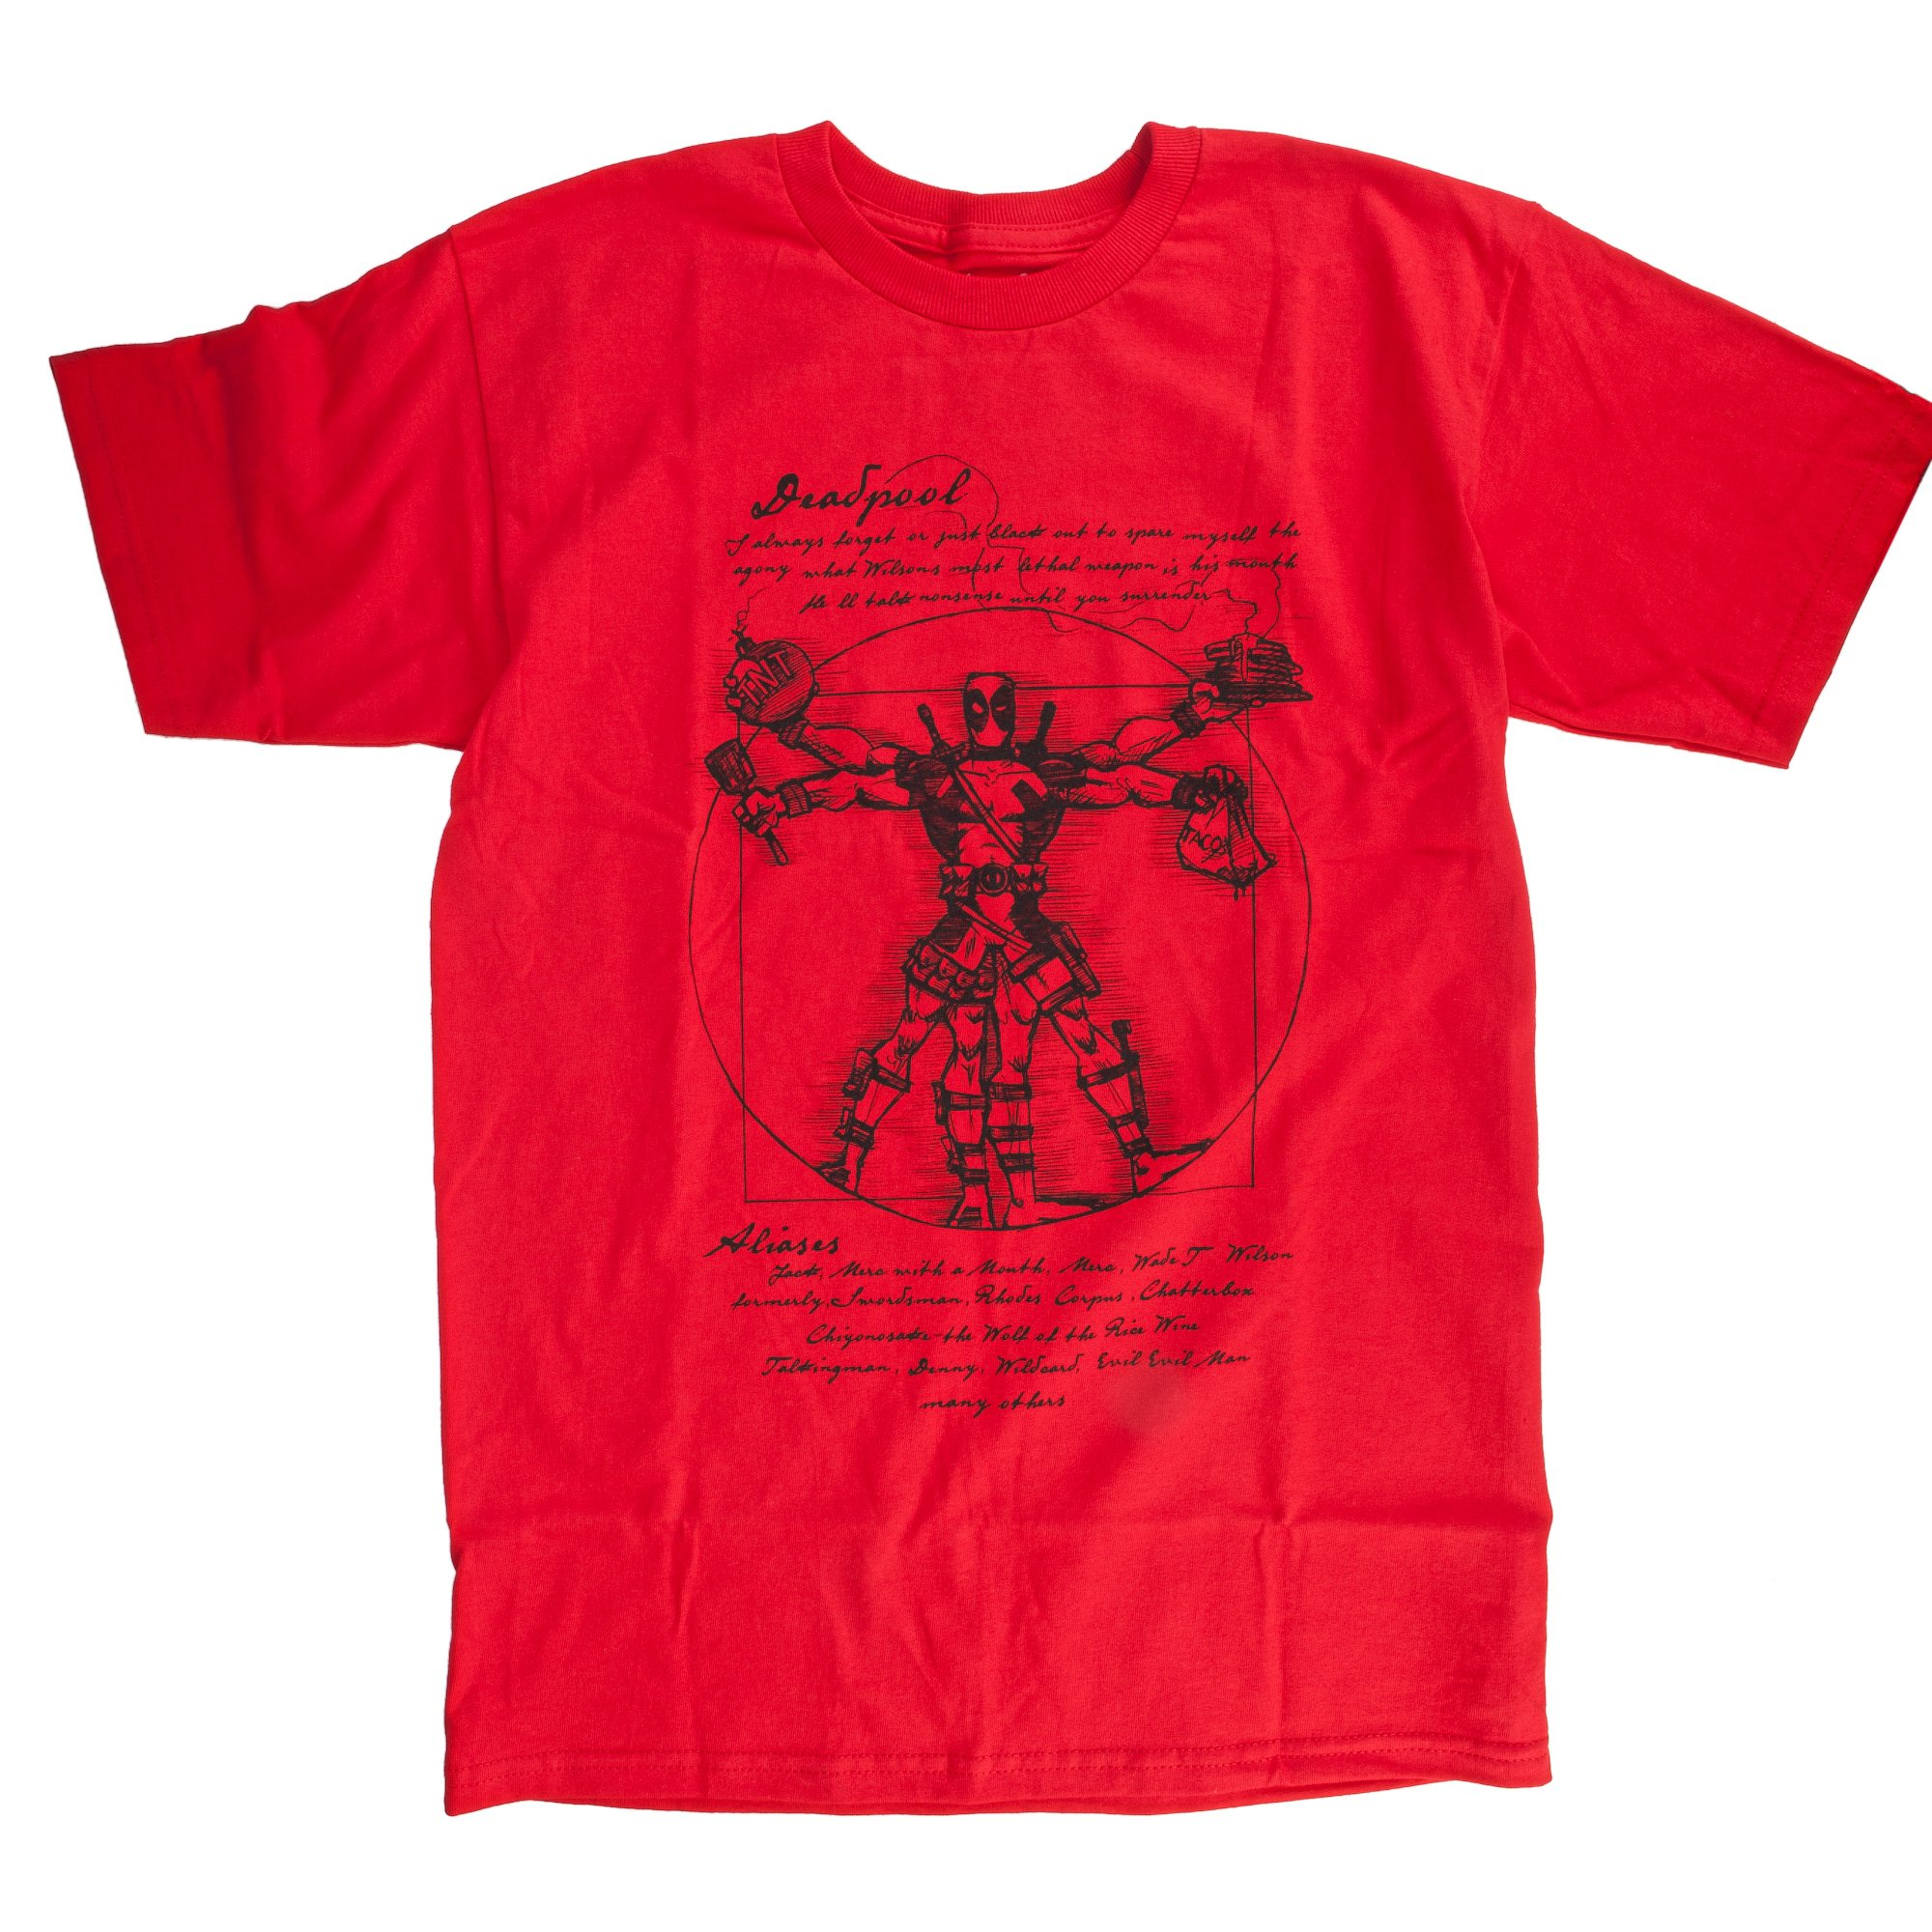 Deadpool Vitruvian T-shirt (Extra Large, Red) by Marvel (Image #1)